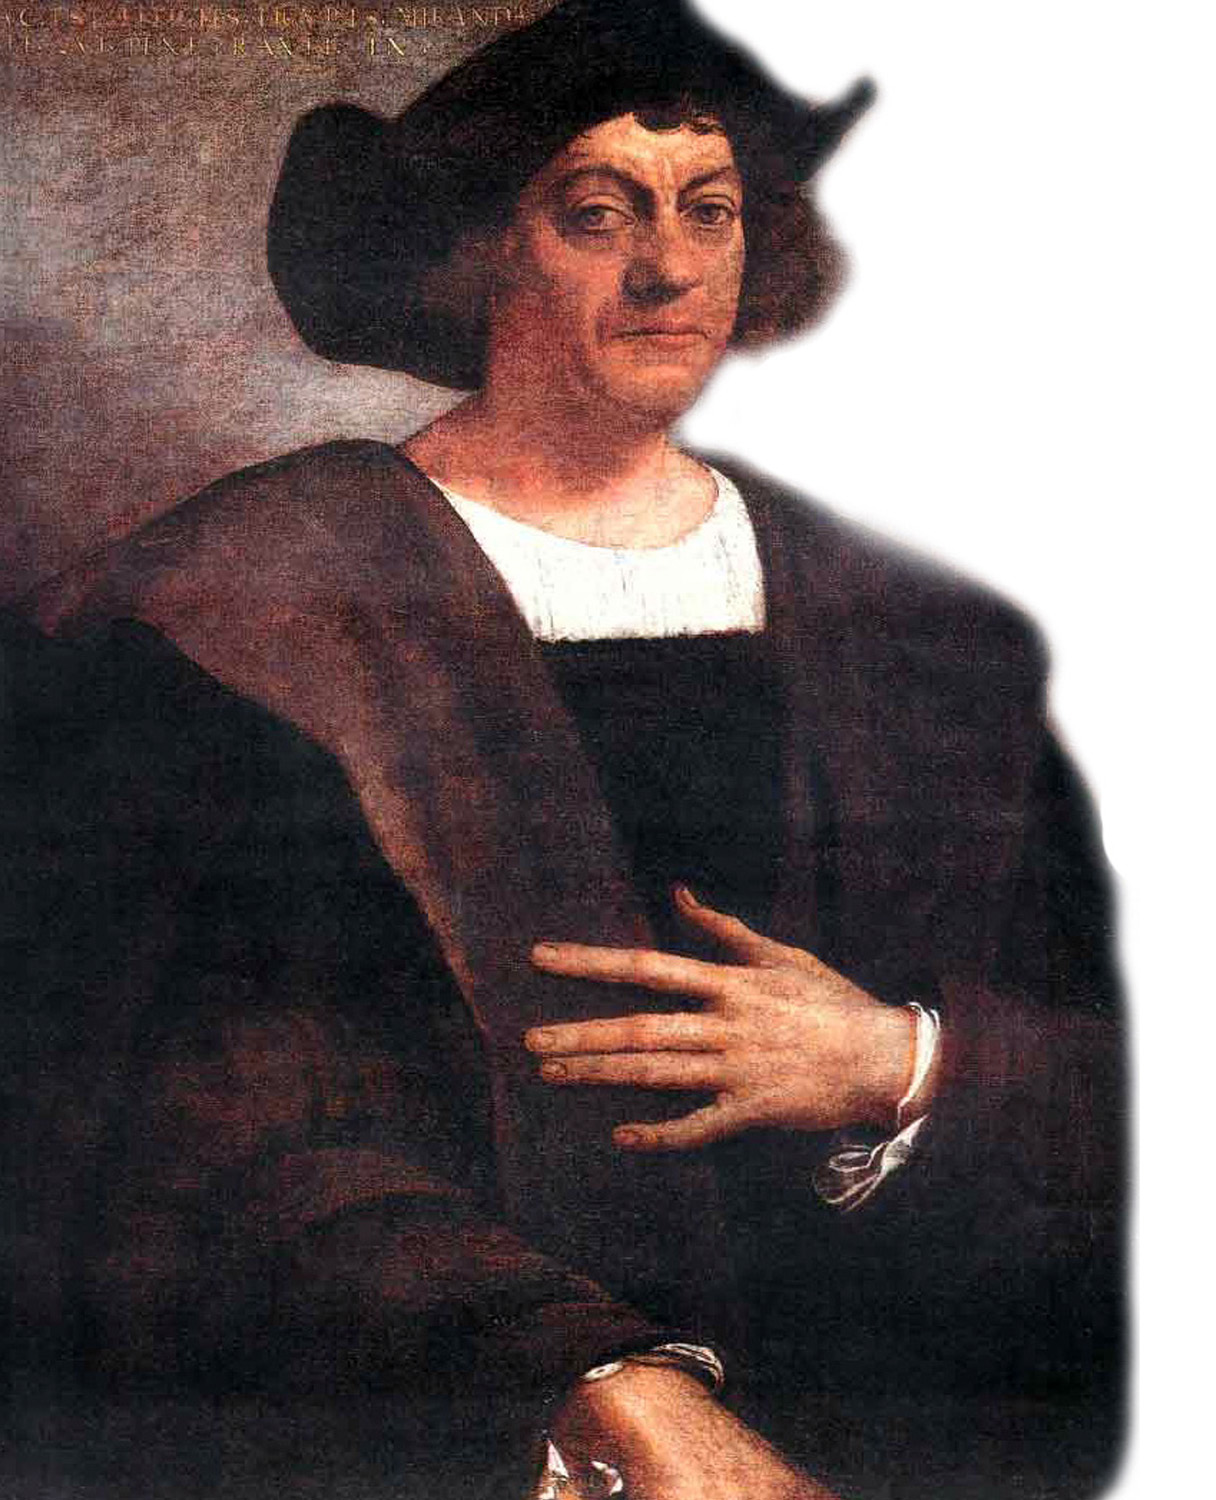 Portrait of Christopher Columbus by Sebastiano del Piombo.